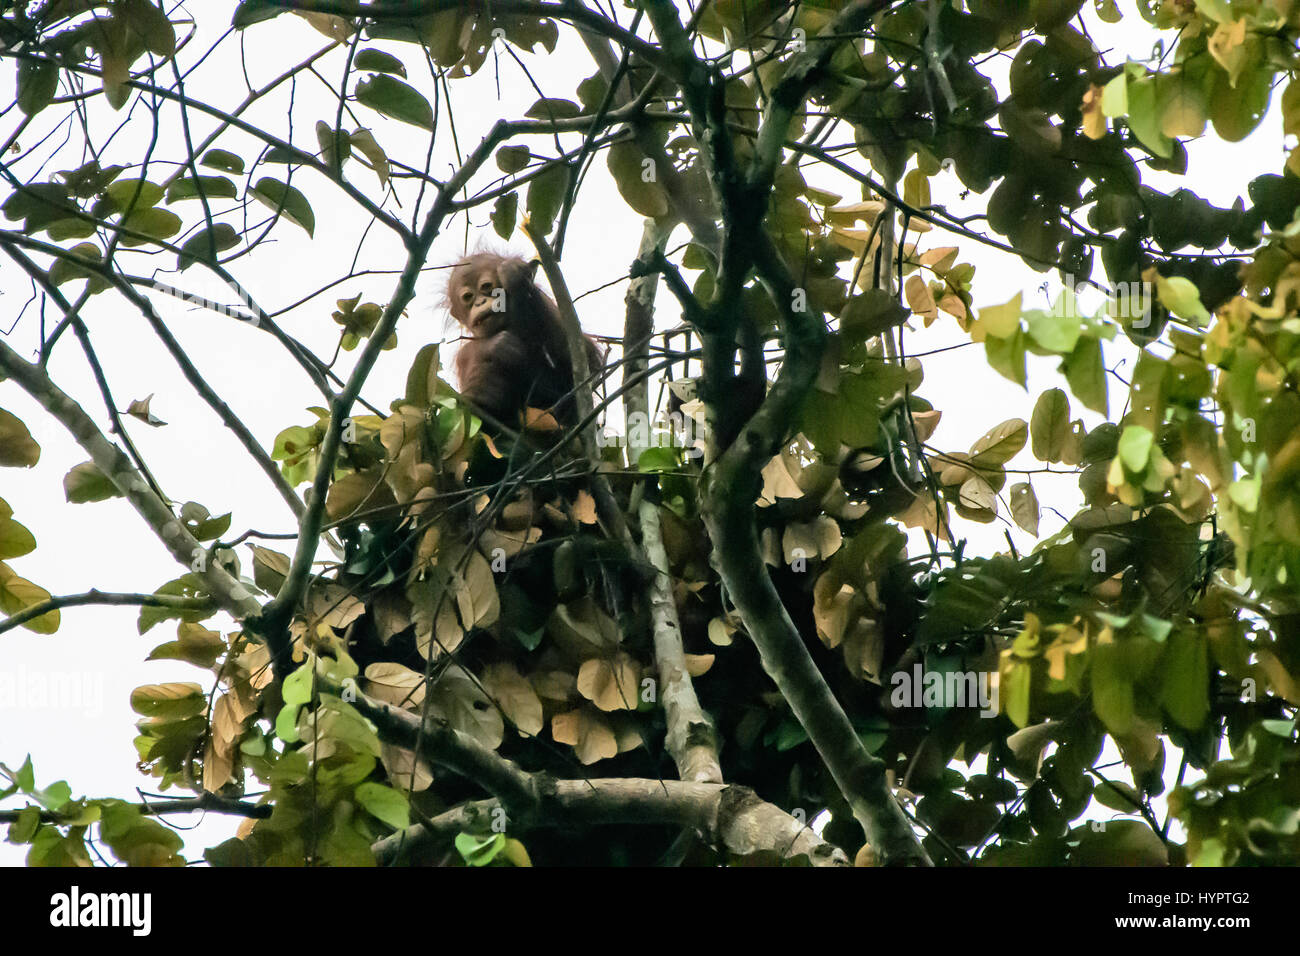 inquisitive baby orangutan peering out from its night nest - Stock Image